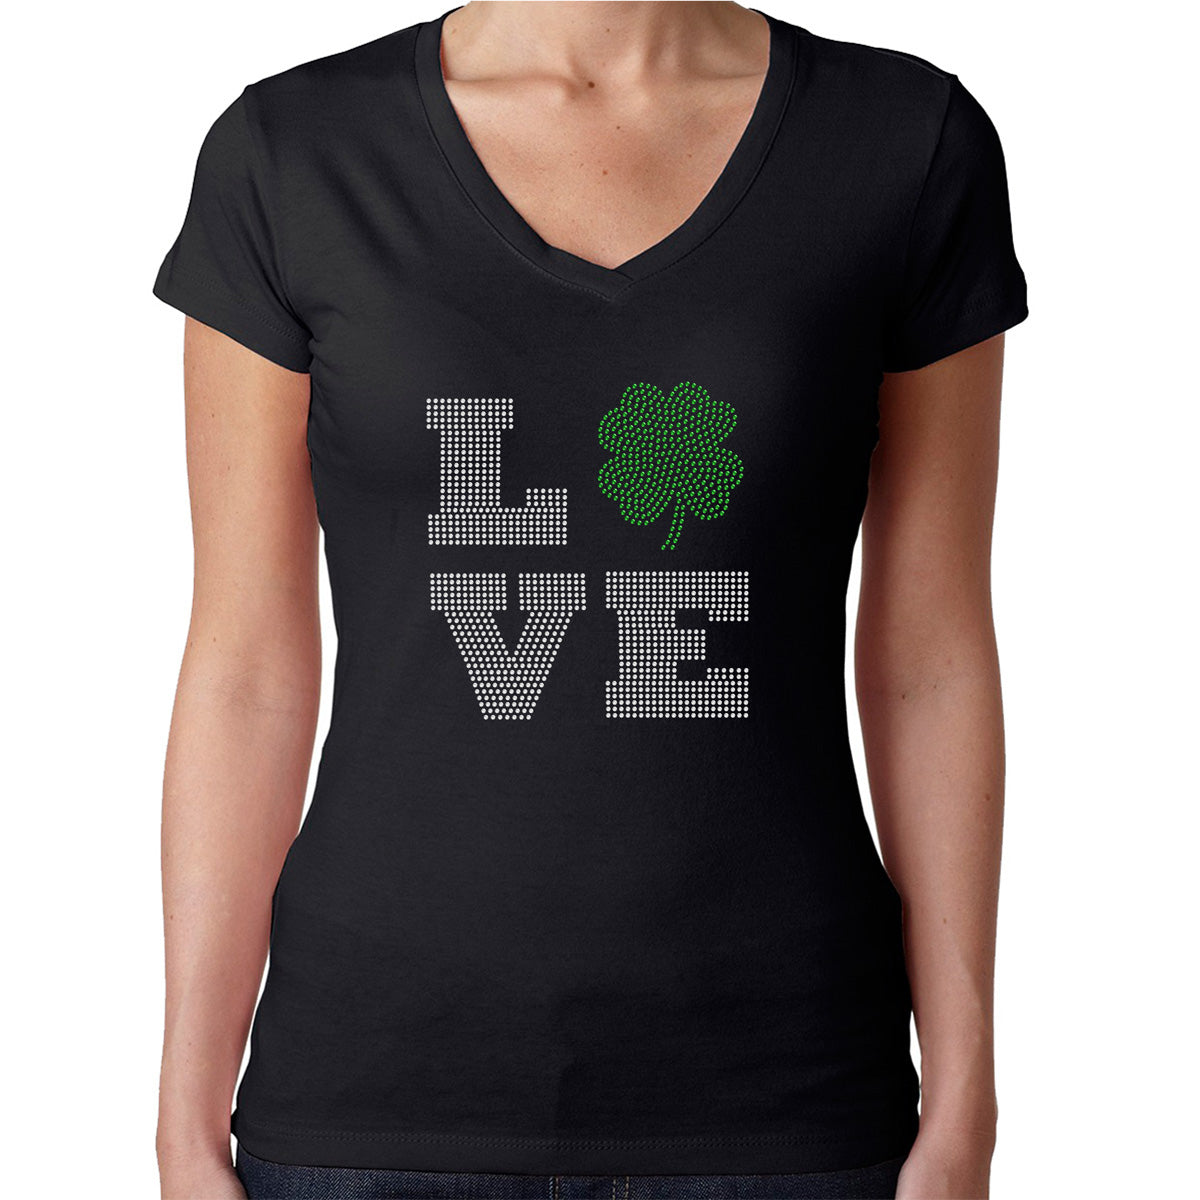 Womens T-Shirt Rhinestone Bling Black Fitted Tee LOVE Irish Shamrock St. Patrick